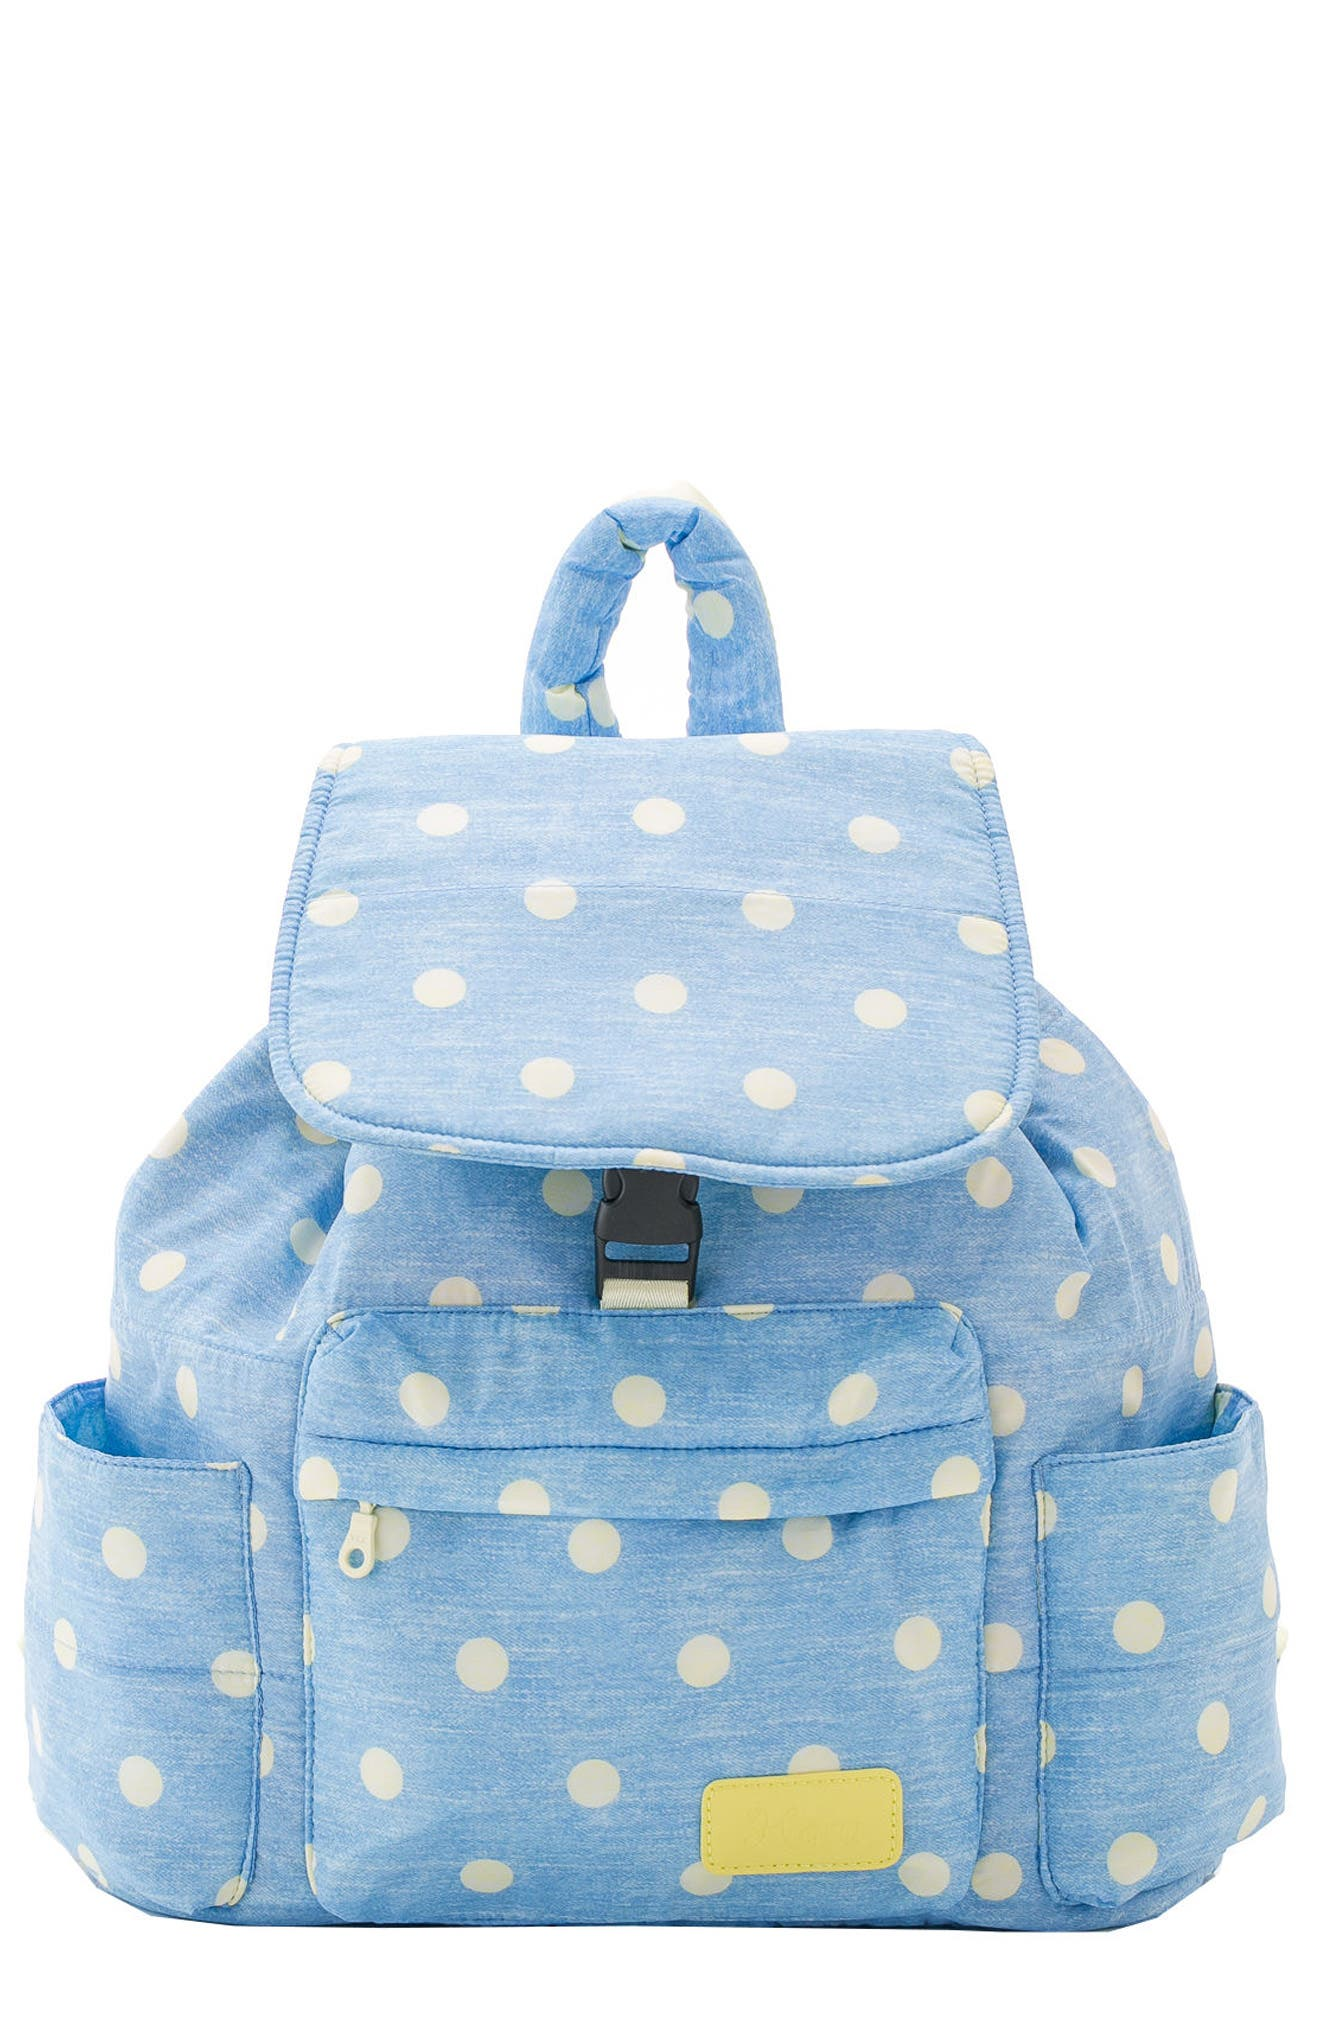 HARU Print Water Repellent Diaper Backpack